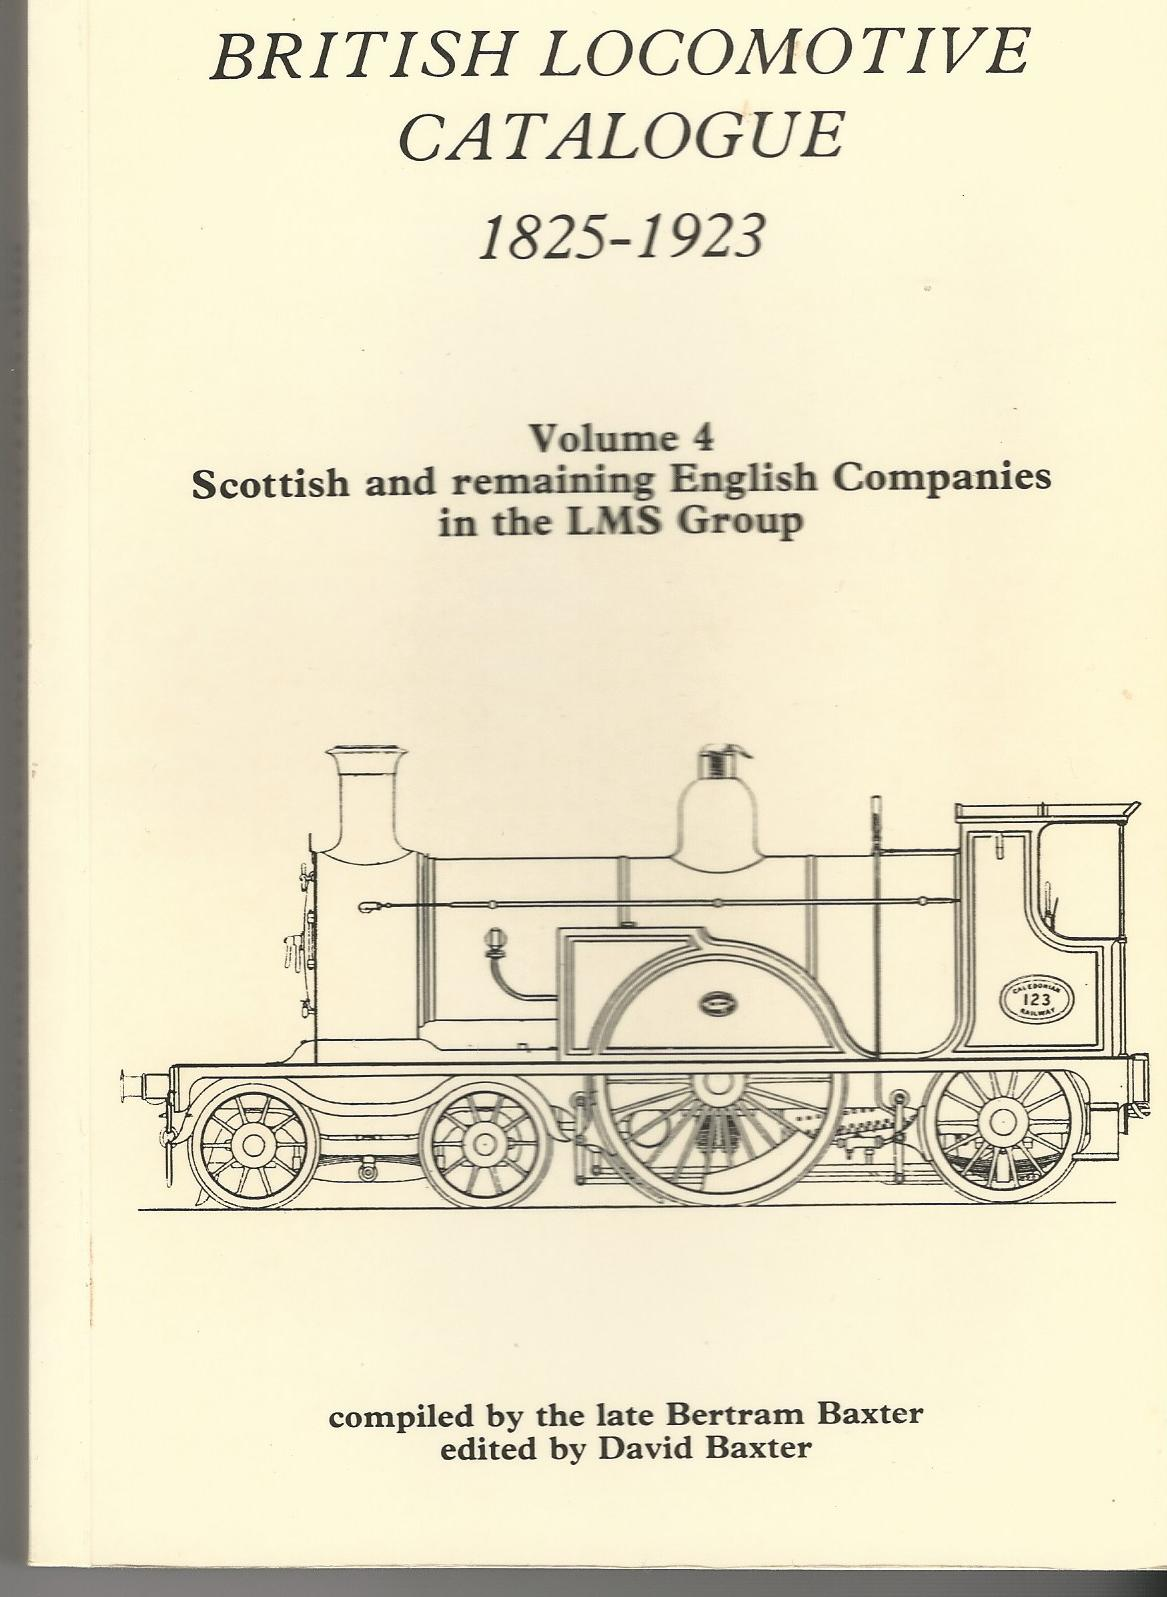 Image for British Locomotive Catalogue 1825 - 1923 Volume 4: Scottish and Remaining English Companies in the LMS Group.